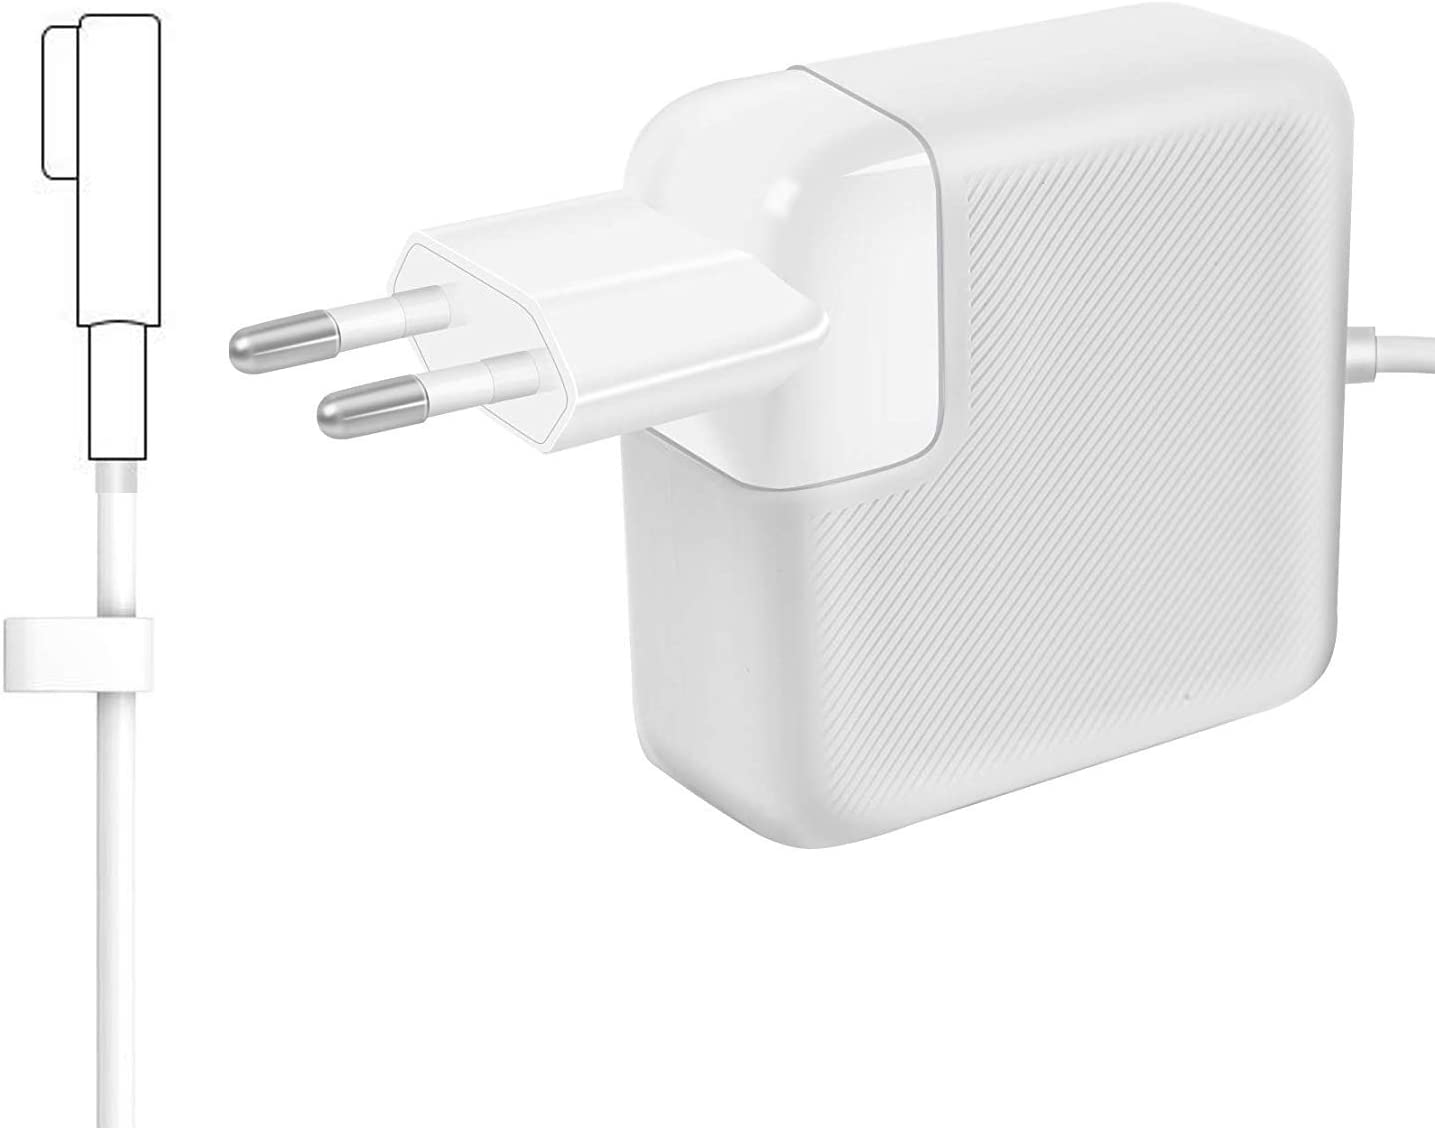 "AndMore Cargador Compatible con MacBook Pro, Cargador MacBook 60W MagSafe 1 Forma de L Adaptador de Corriente (para MacBooks Macbook Pro 11"" & 13"" Pulgadas, Antes de Mediados de 2012 2011 2010 2009)"